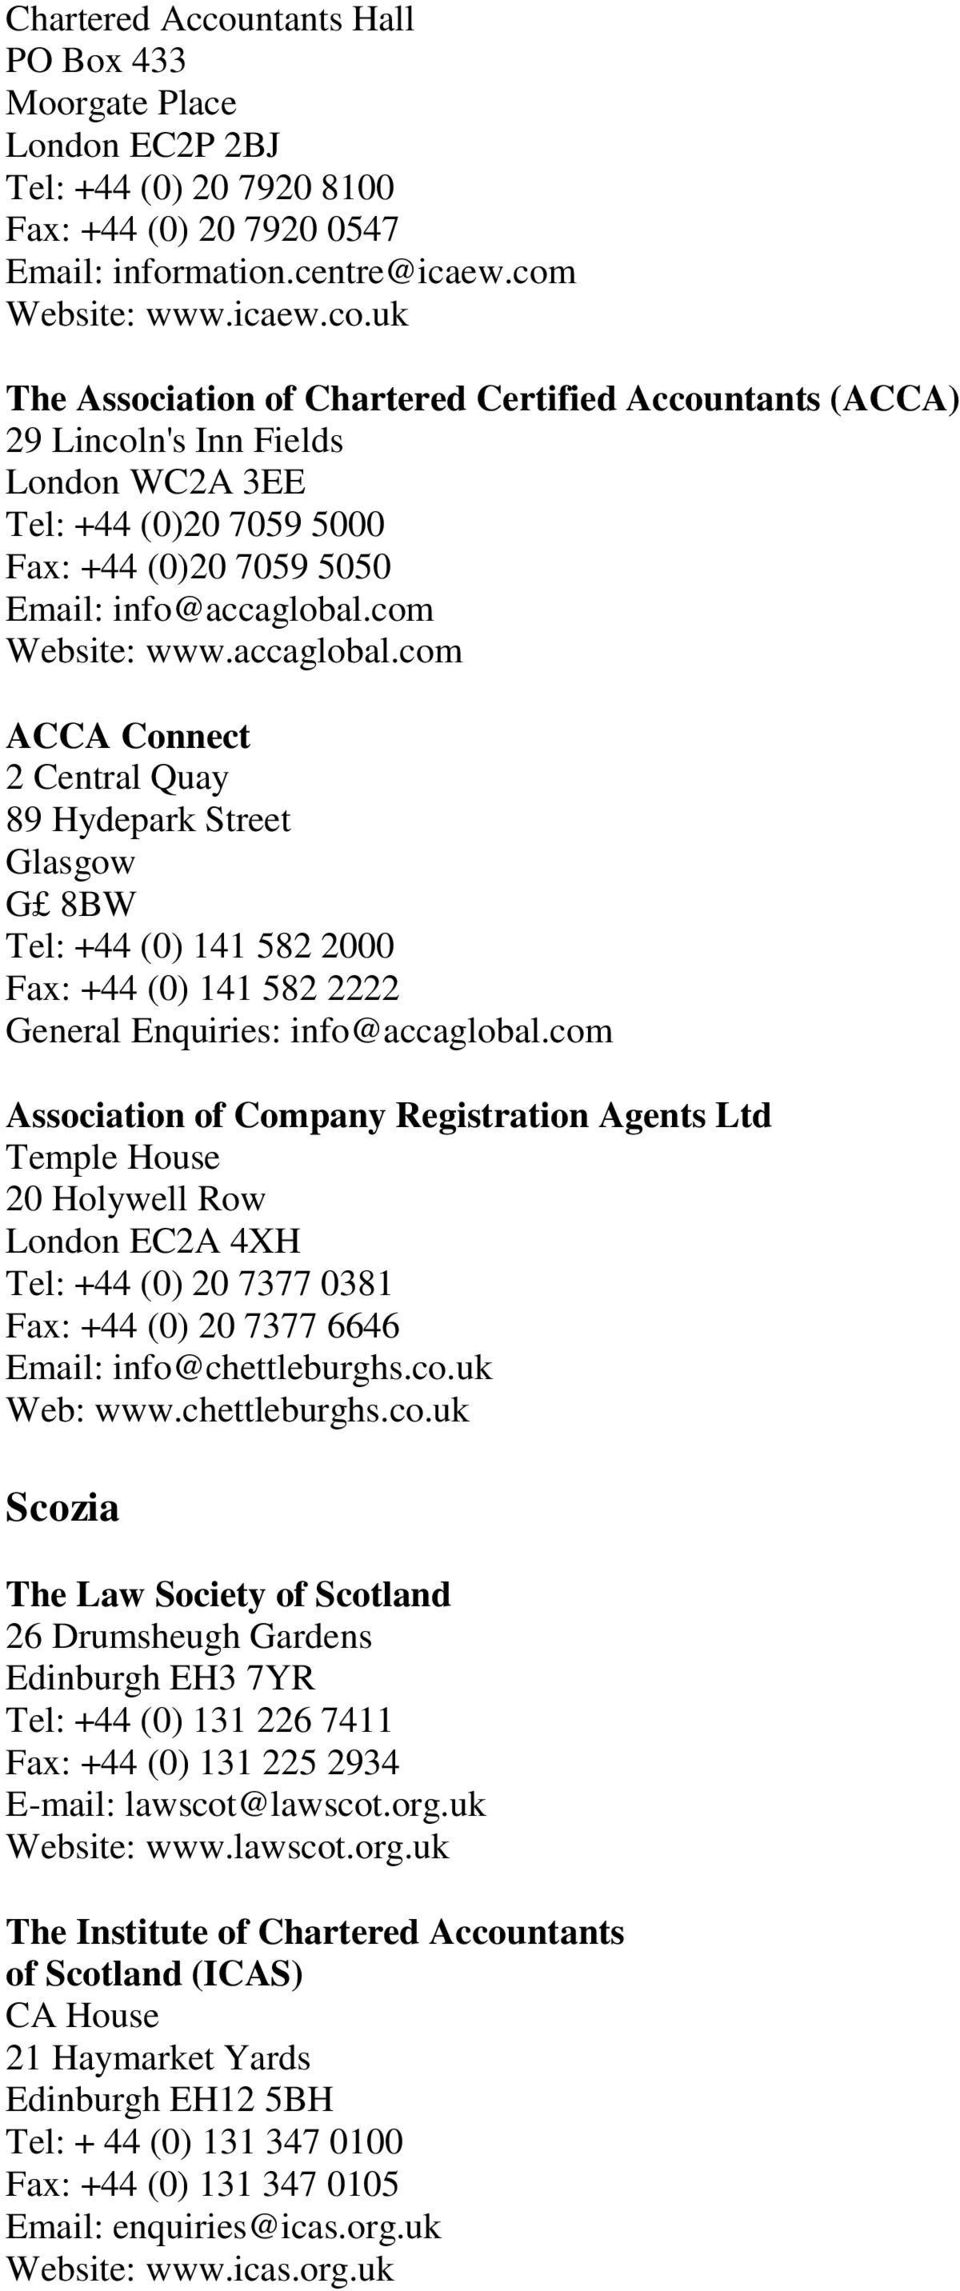 com Association of Company Registration Agents Ltd Temple House 20 Holywell Row London EC2A 4XH Tel: +44 (0) 20 7377 0381 Fax: +44 (0) 20 7377 6646 Email: info@chettleburghs.co.uk Web: www.